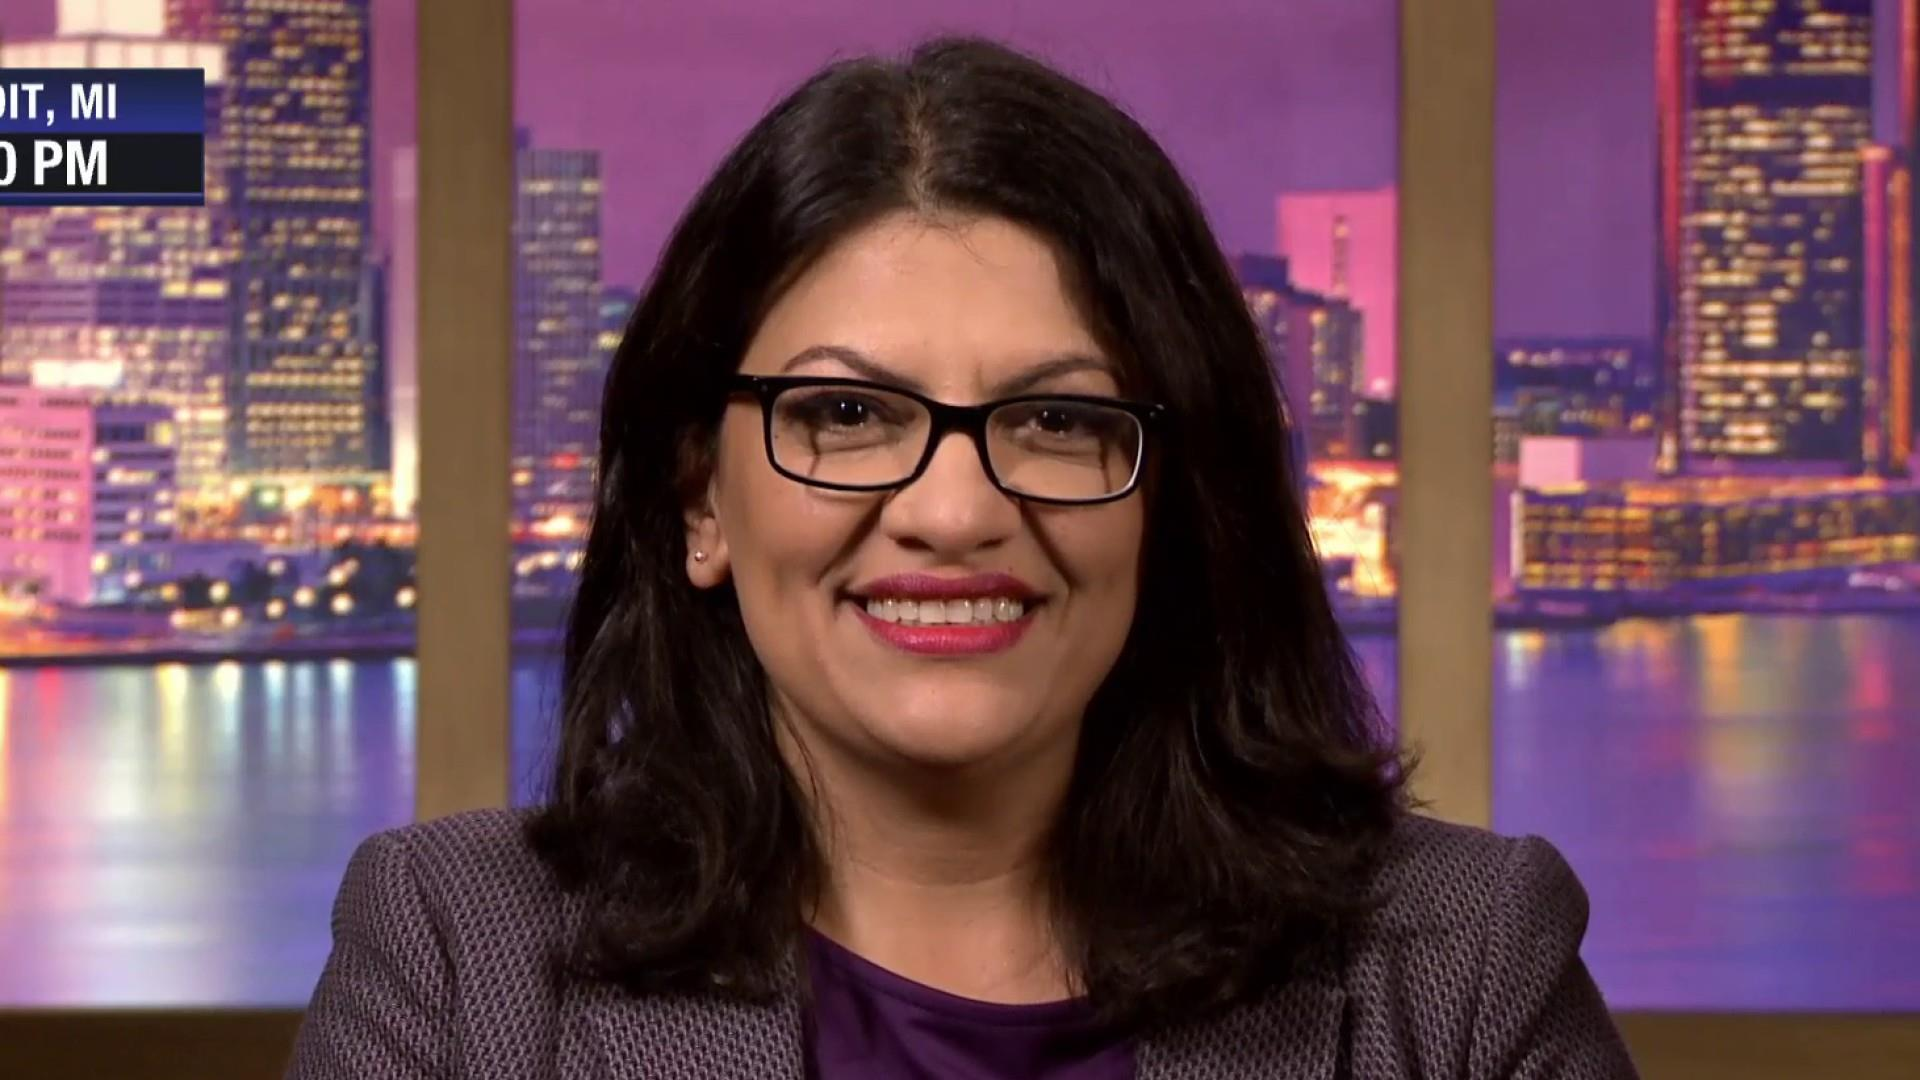 Rep. Tlaib unveils bold new policy for America's poor